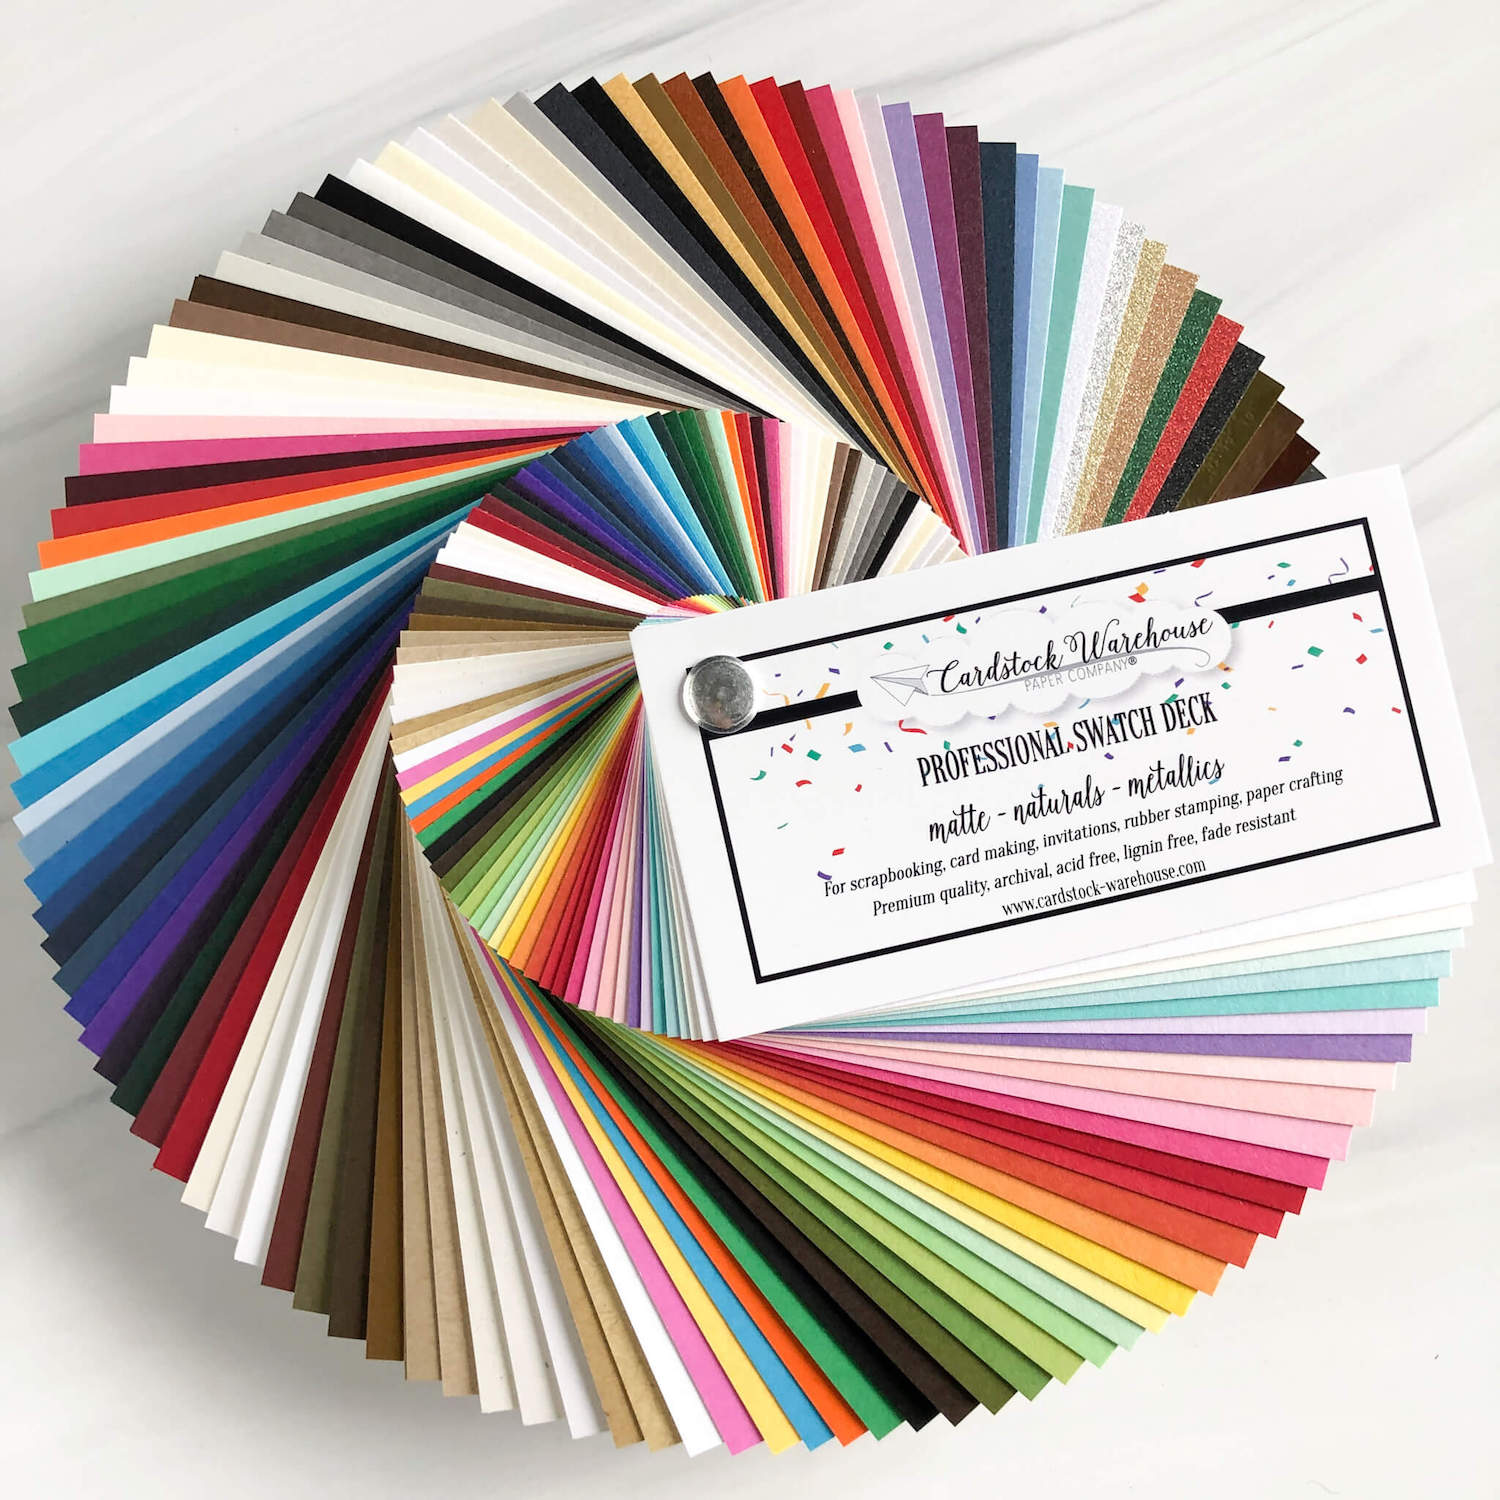 Swatch Deck of Papers from Cardstock Warehouse Paper Company